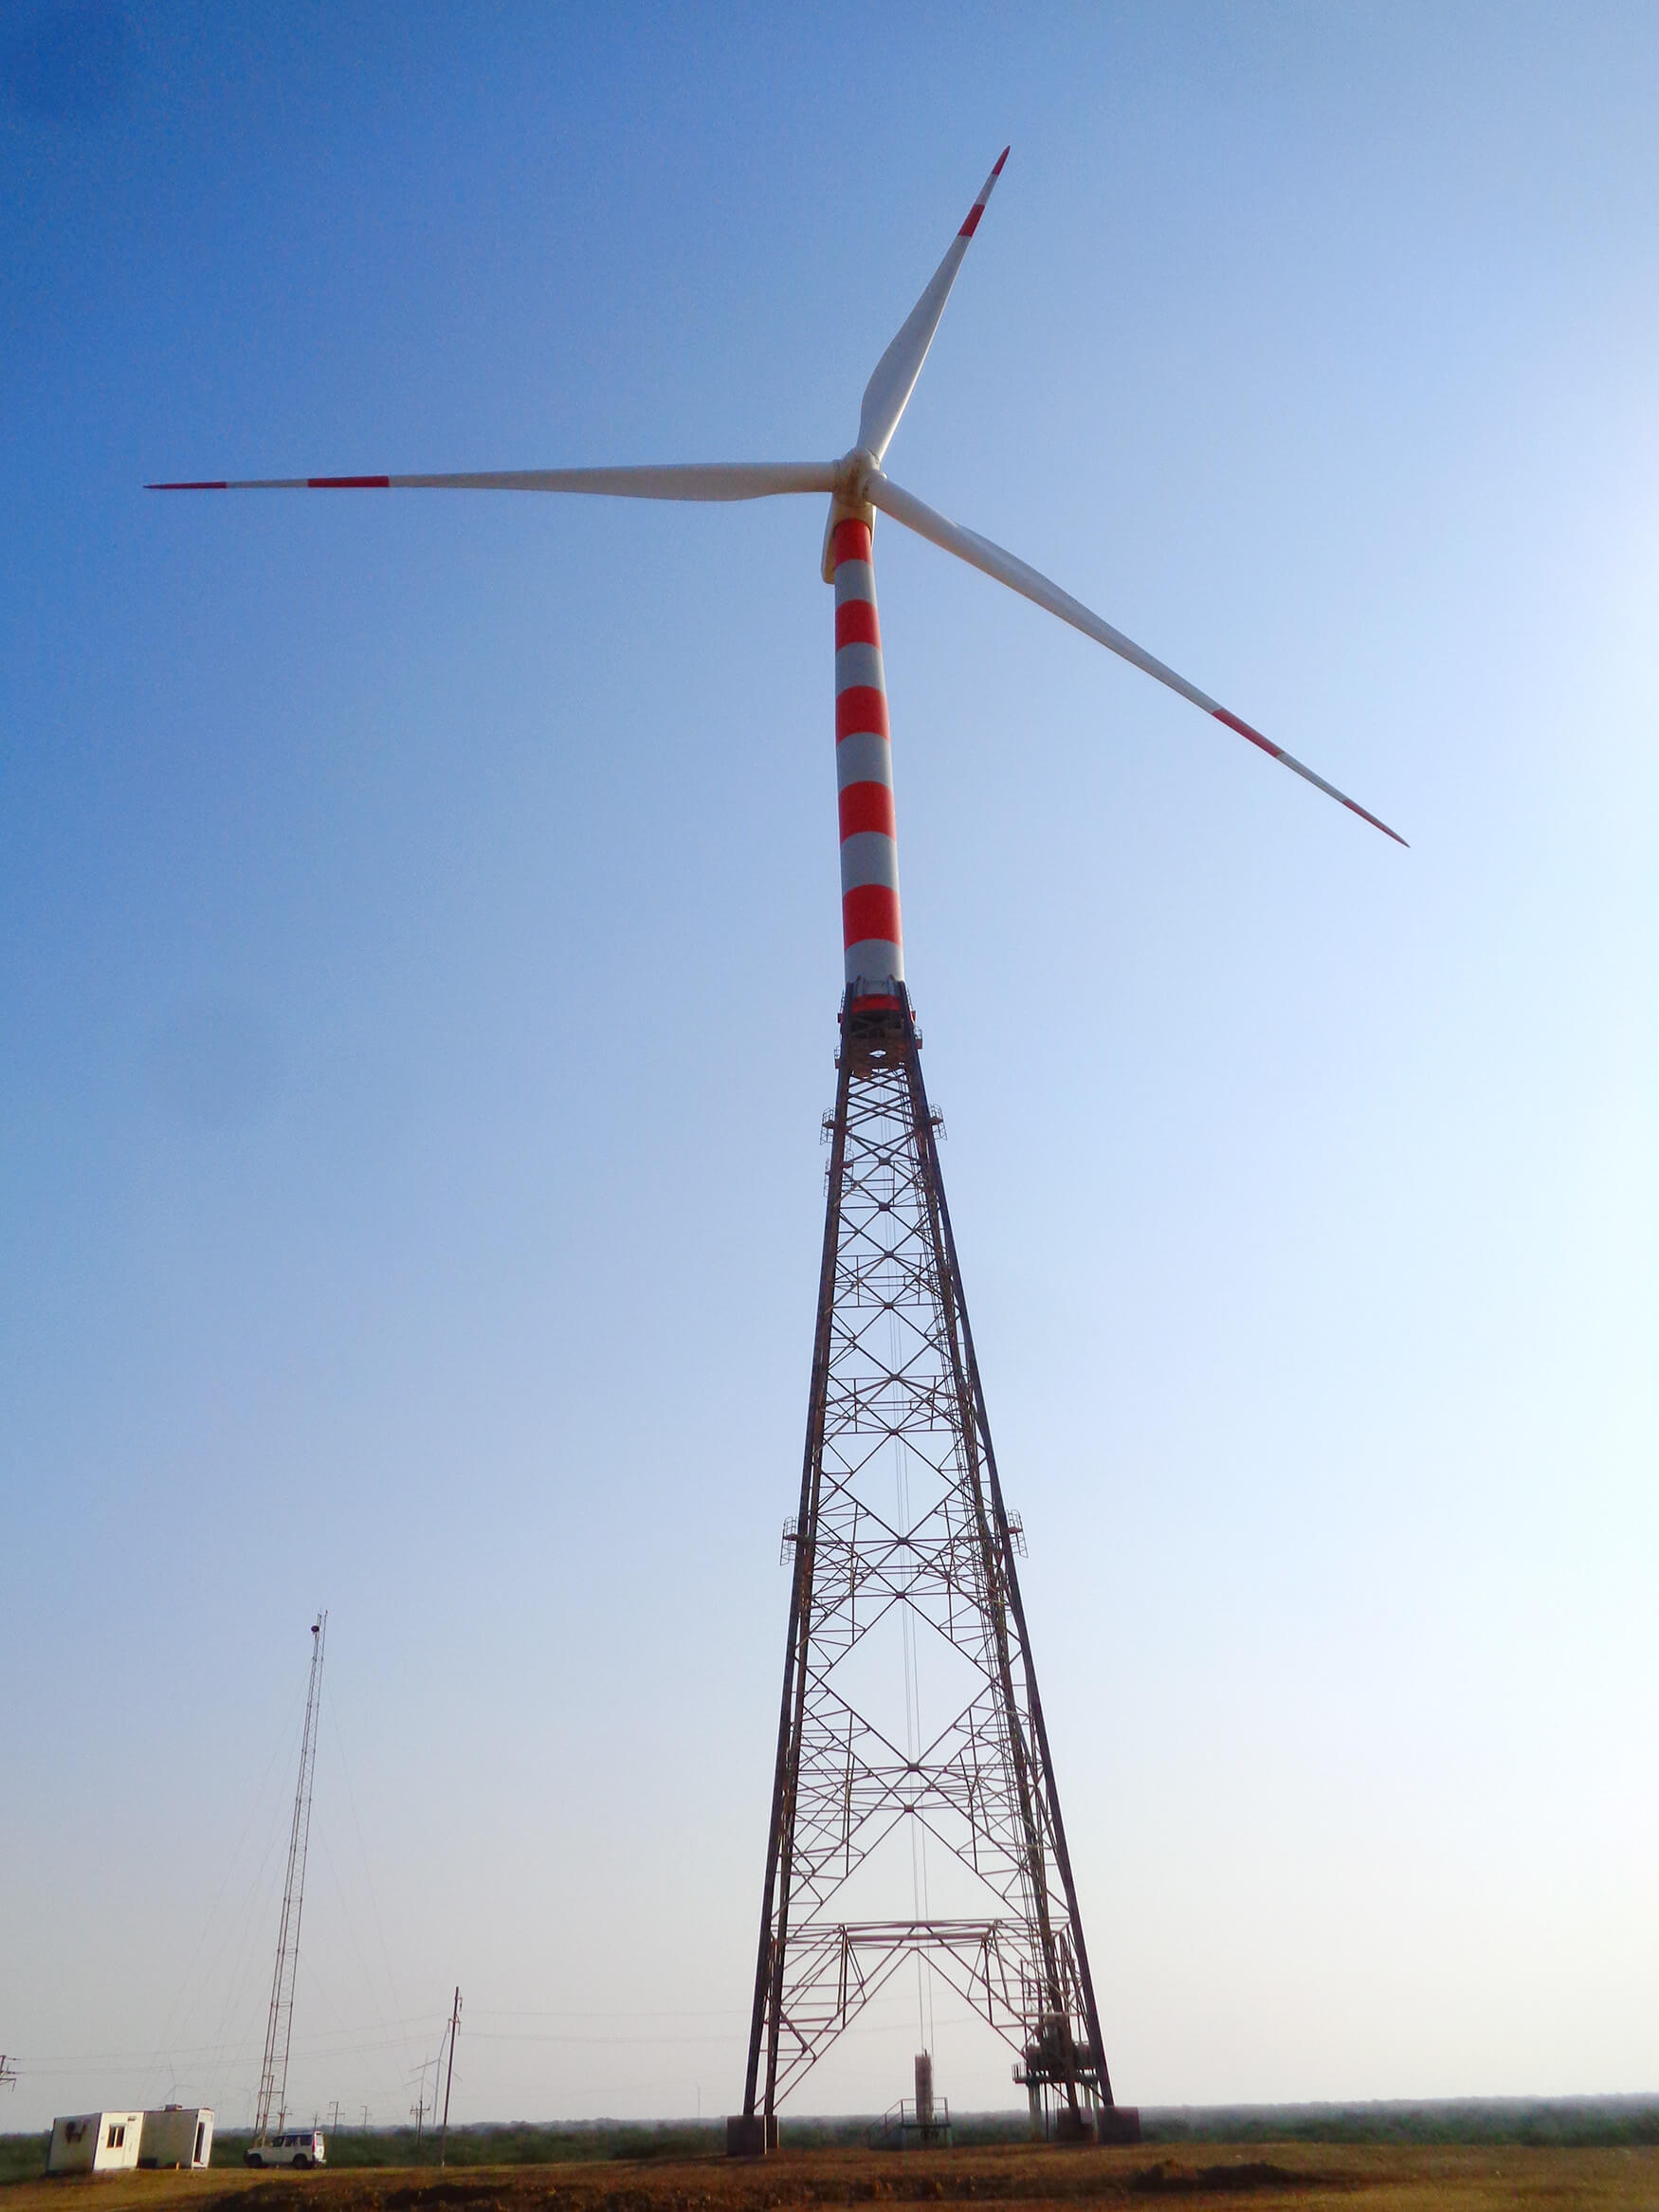 S111-120m1 Suzlon Secures Maiden Order For New S111 Hybrid Wind Turbine